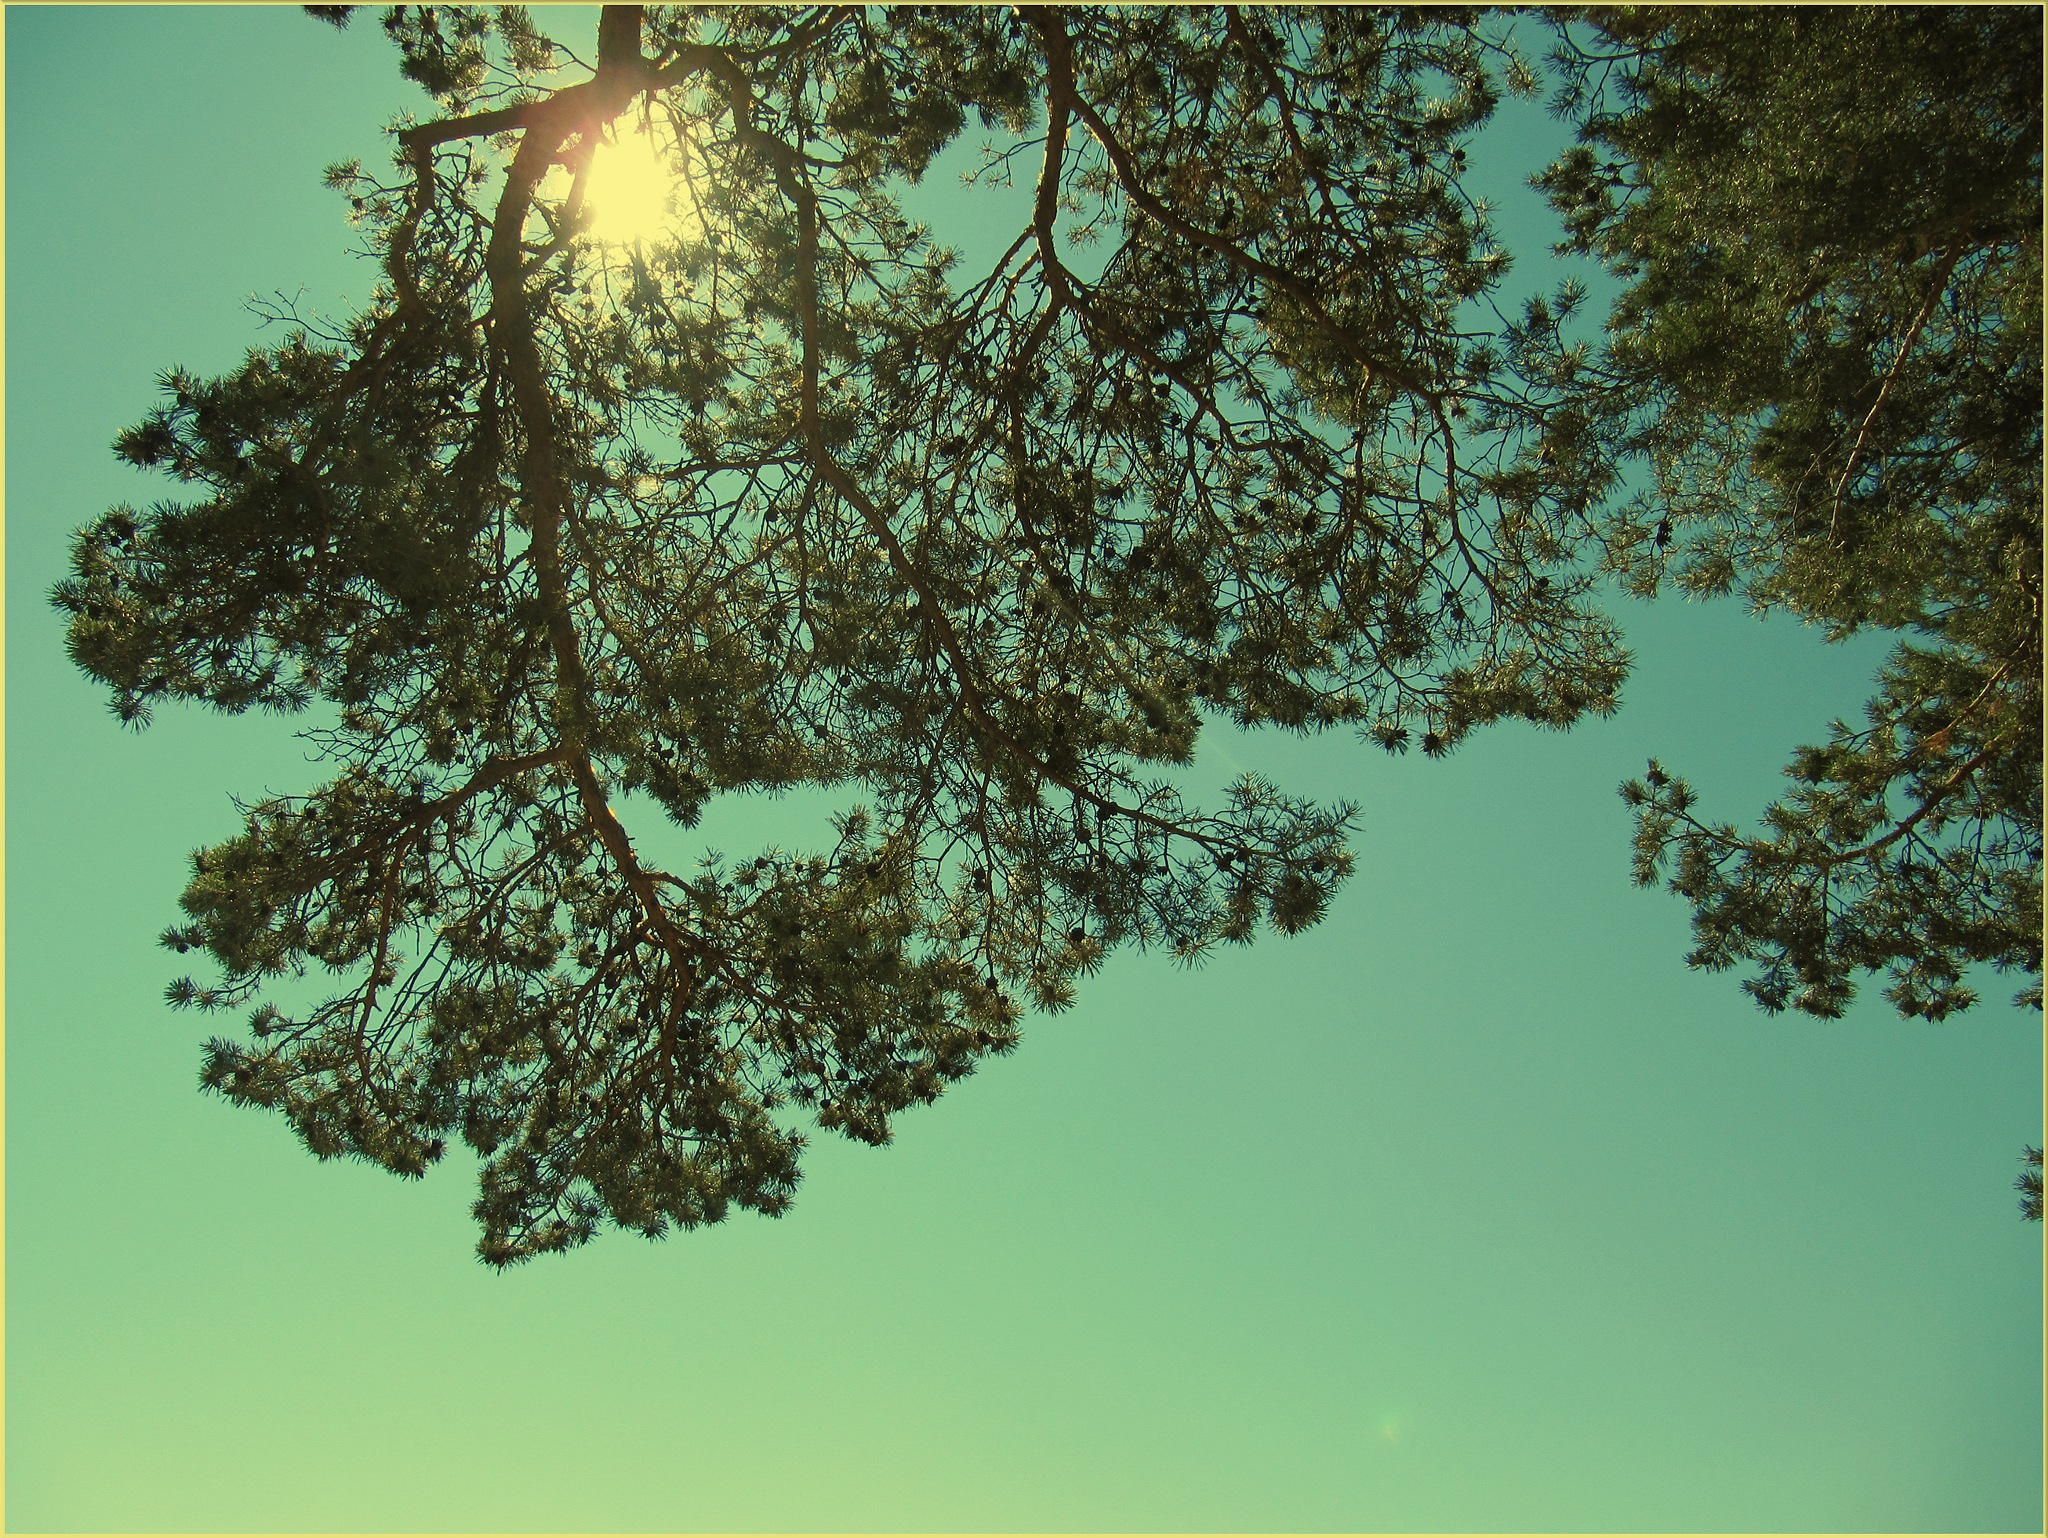 Pine Tree in the Sunshine by Mikael Rennerhorn